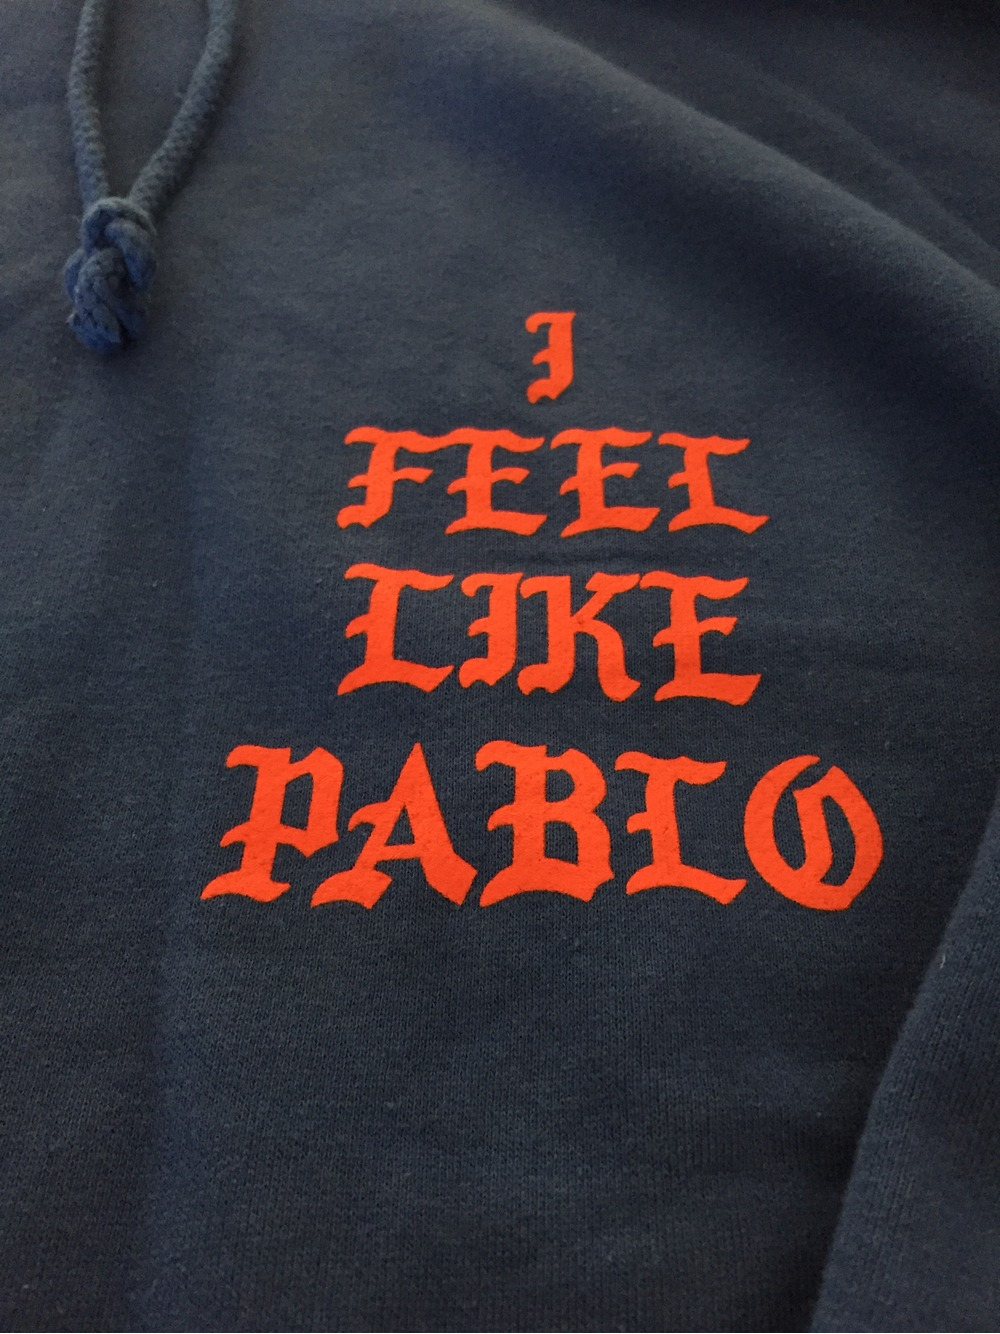 Kanye west the life of pablo merchandise hoodie supreme for Life of pablo merch